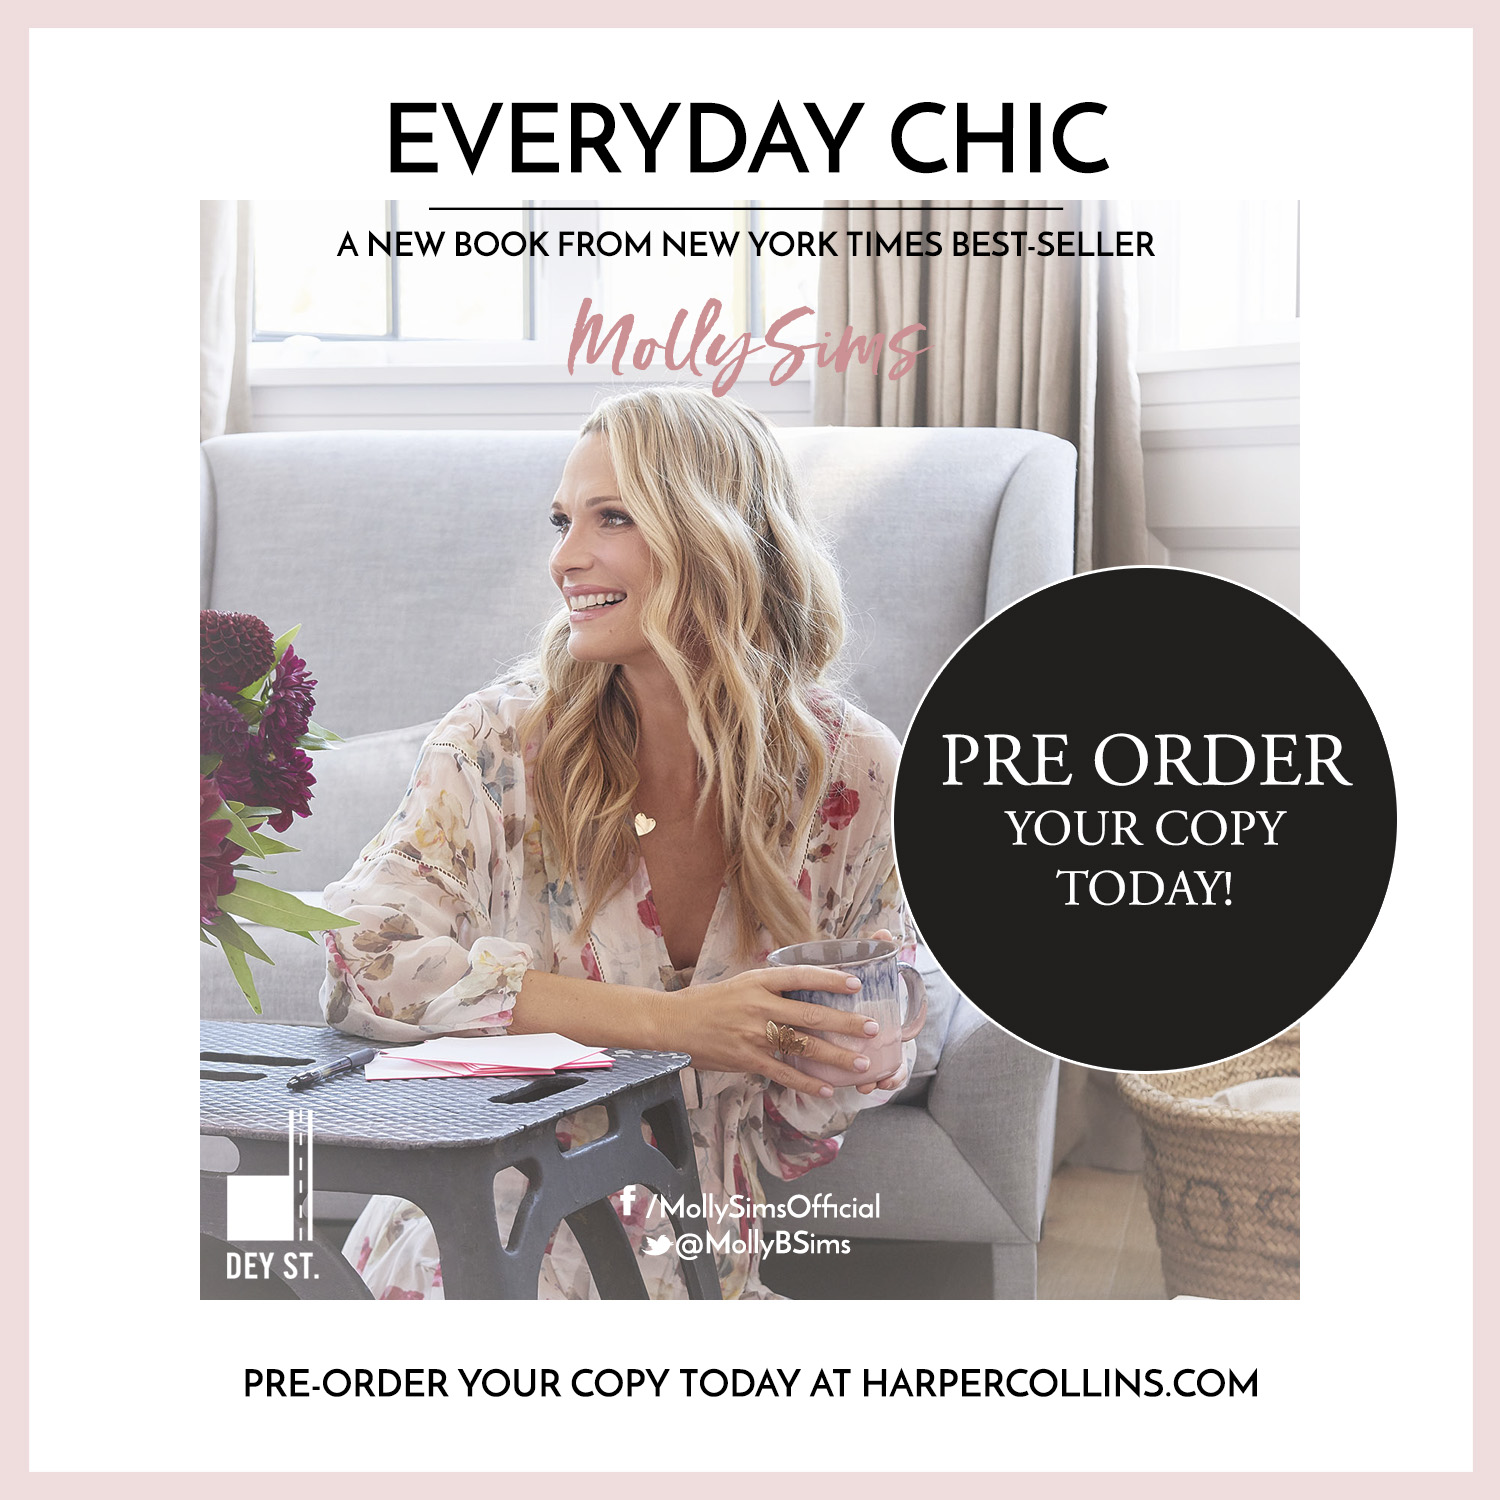 Harper Collins Pre-Sale 4x4 Everyday Chic.jpg